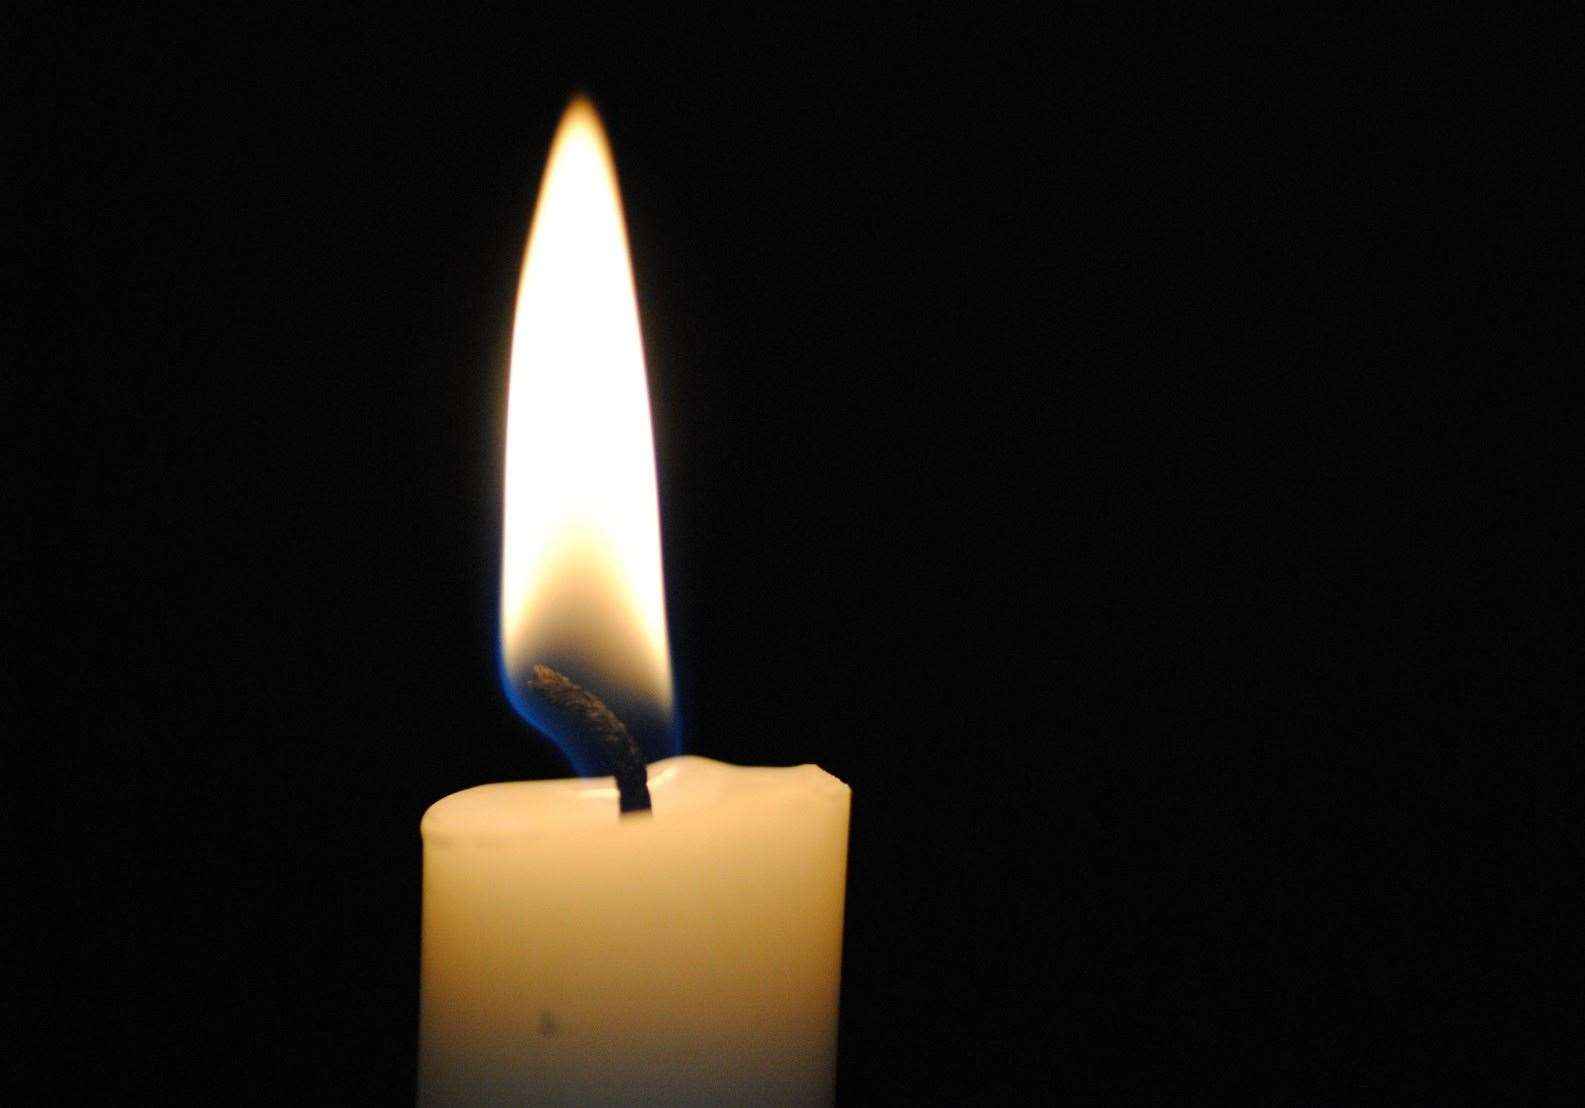 The theme for Holocaust Memorial Day 2021 is Be the Light in the Darkness. Stock picture